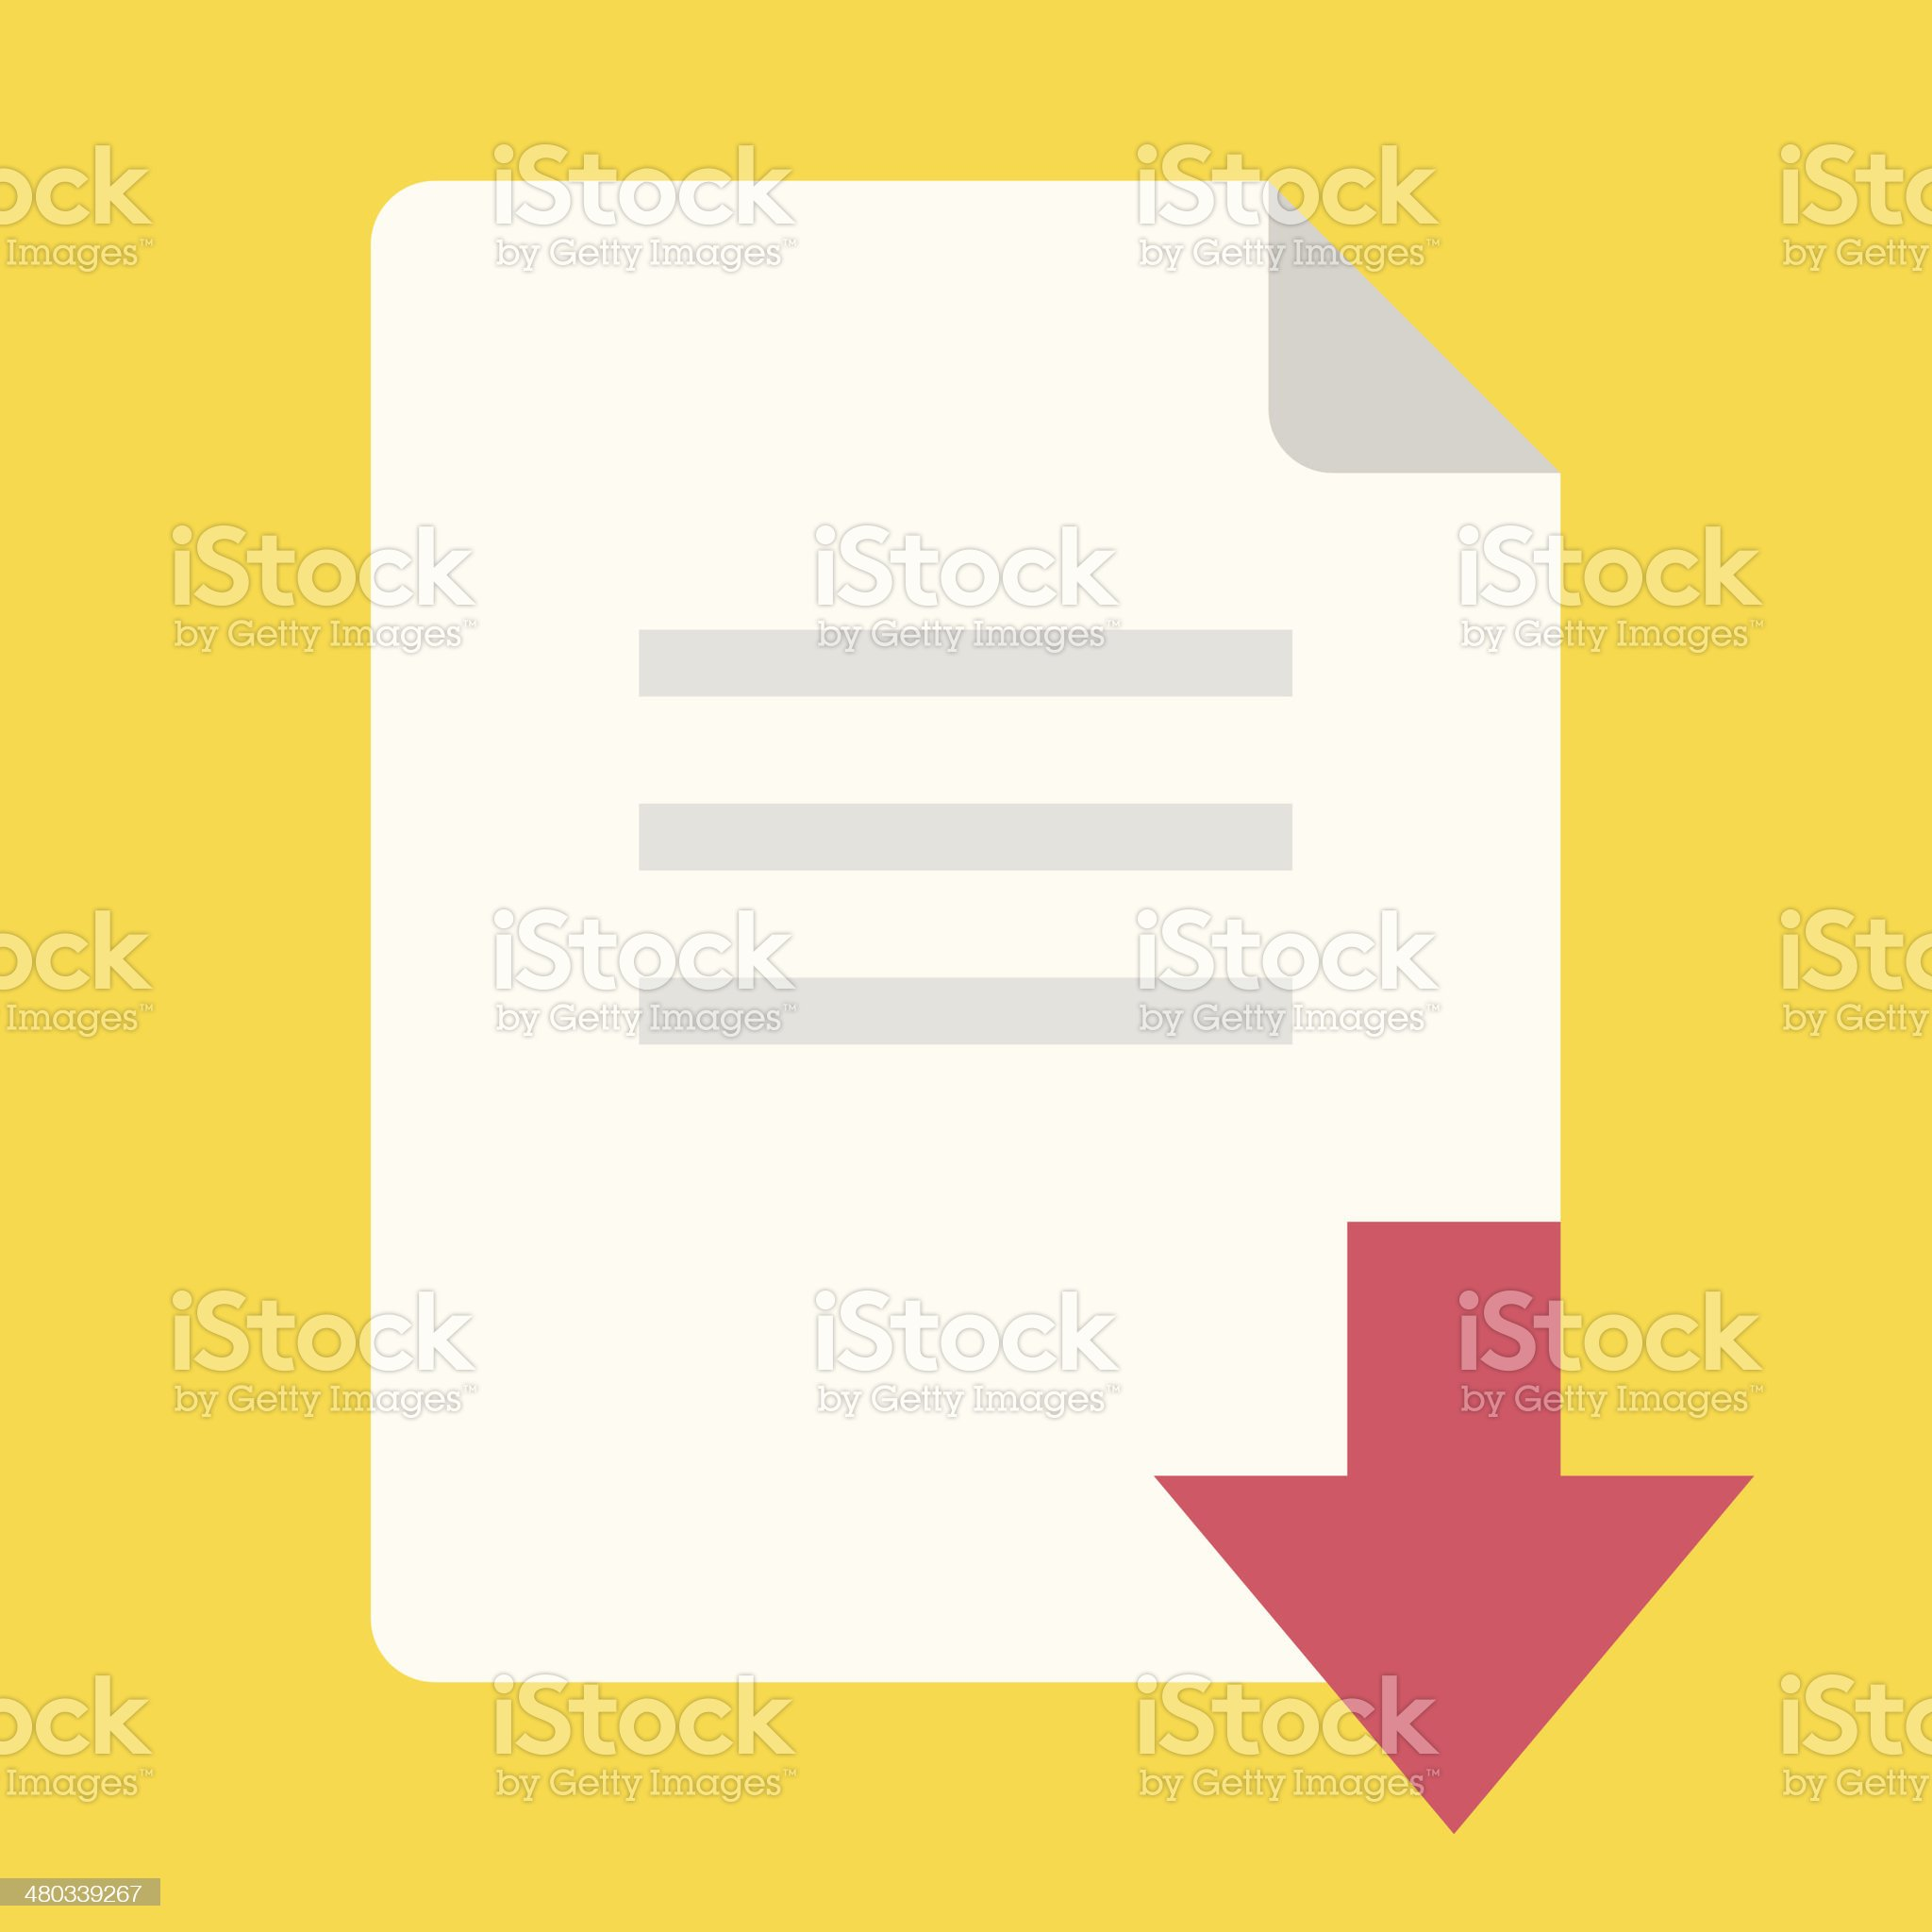 Vector Download File Icon royalty-free stock vector art